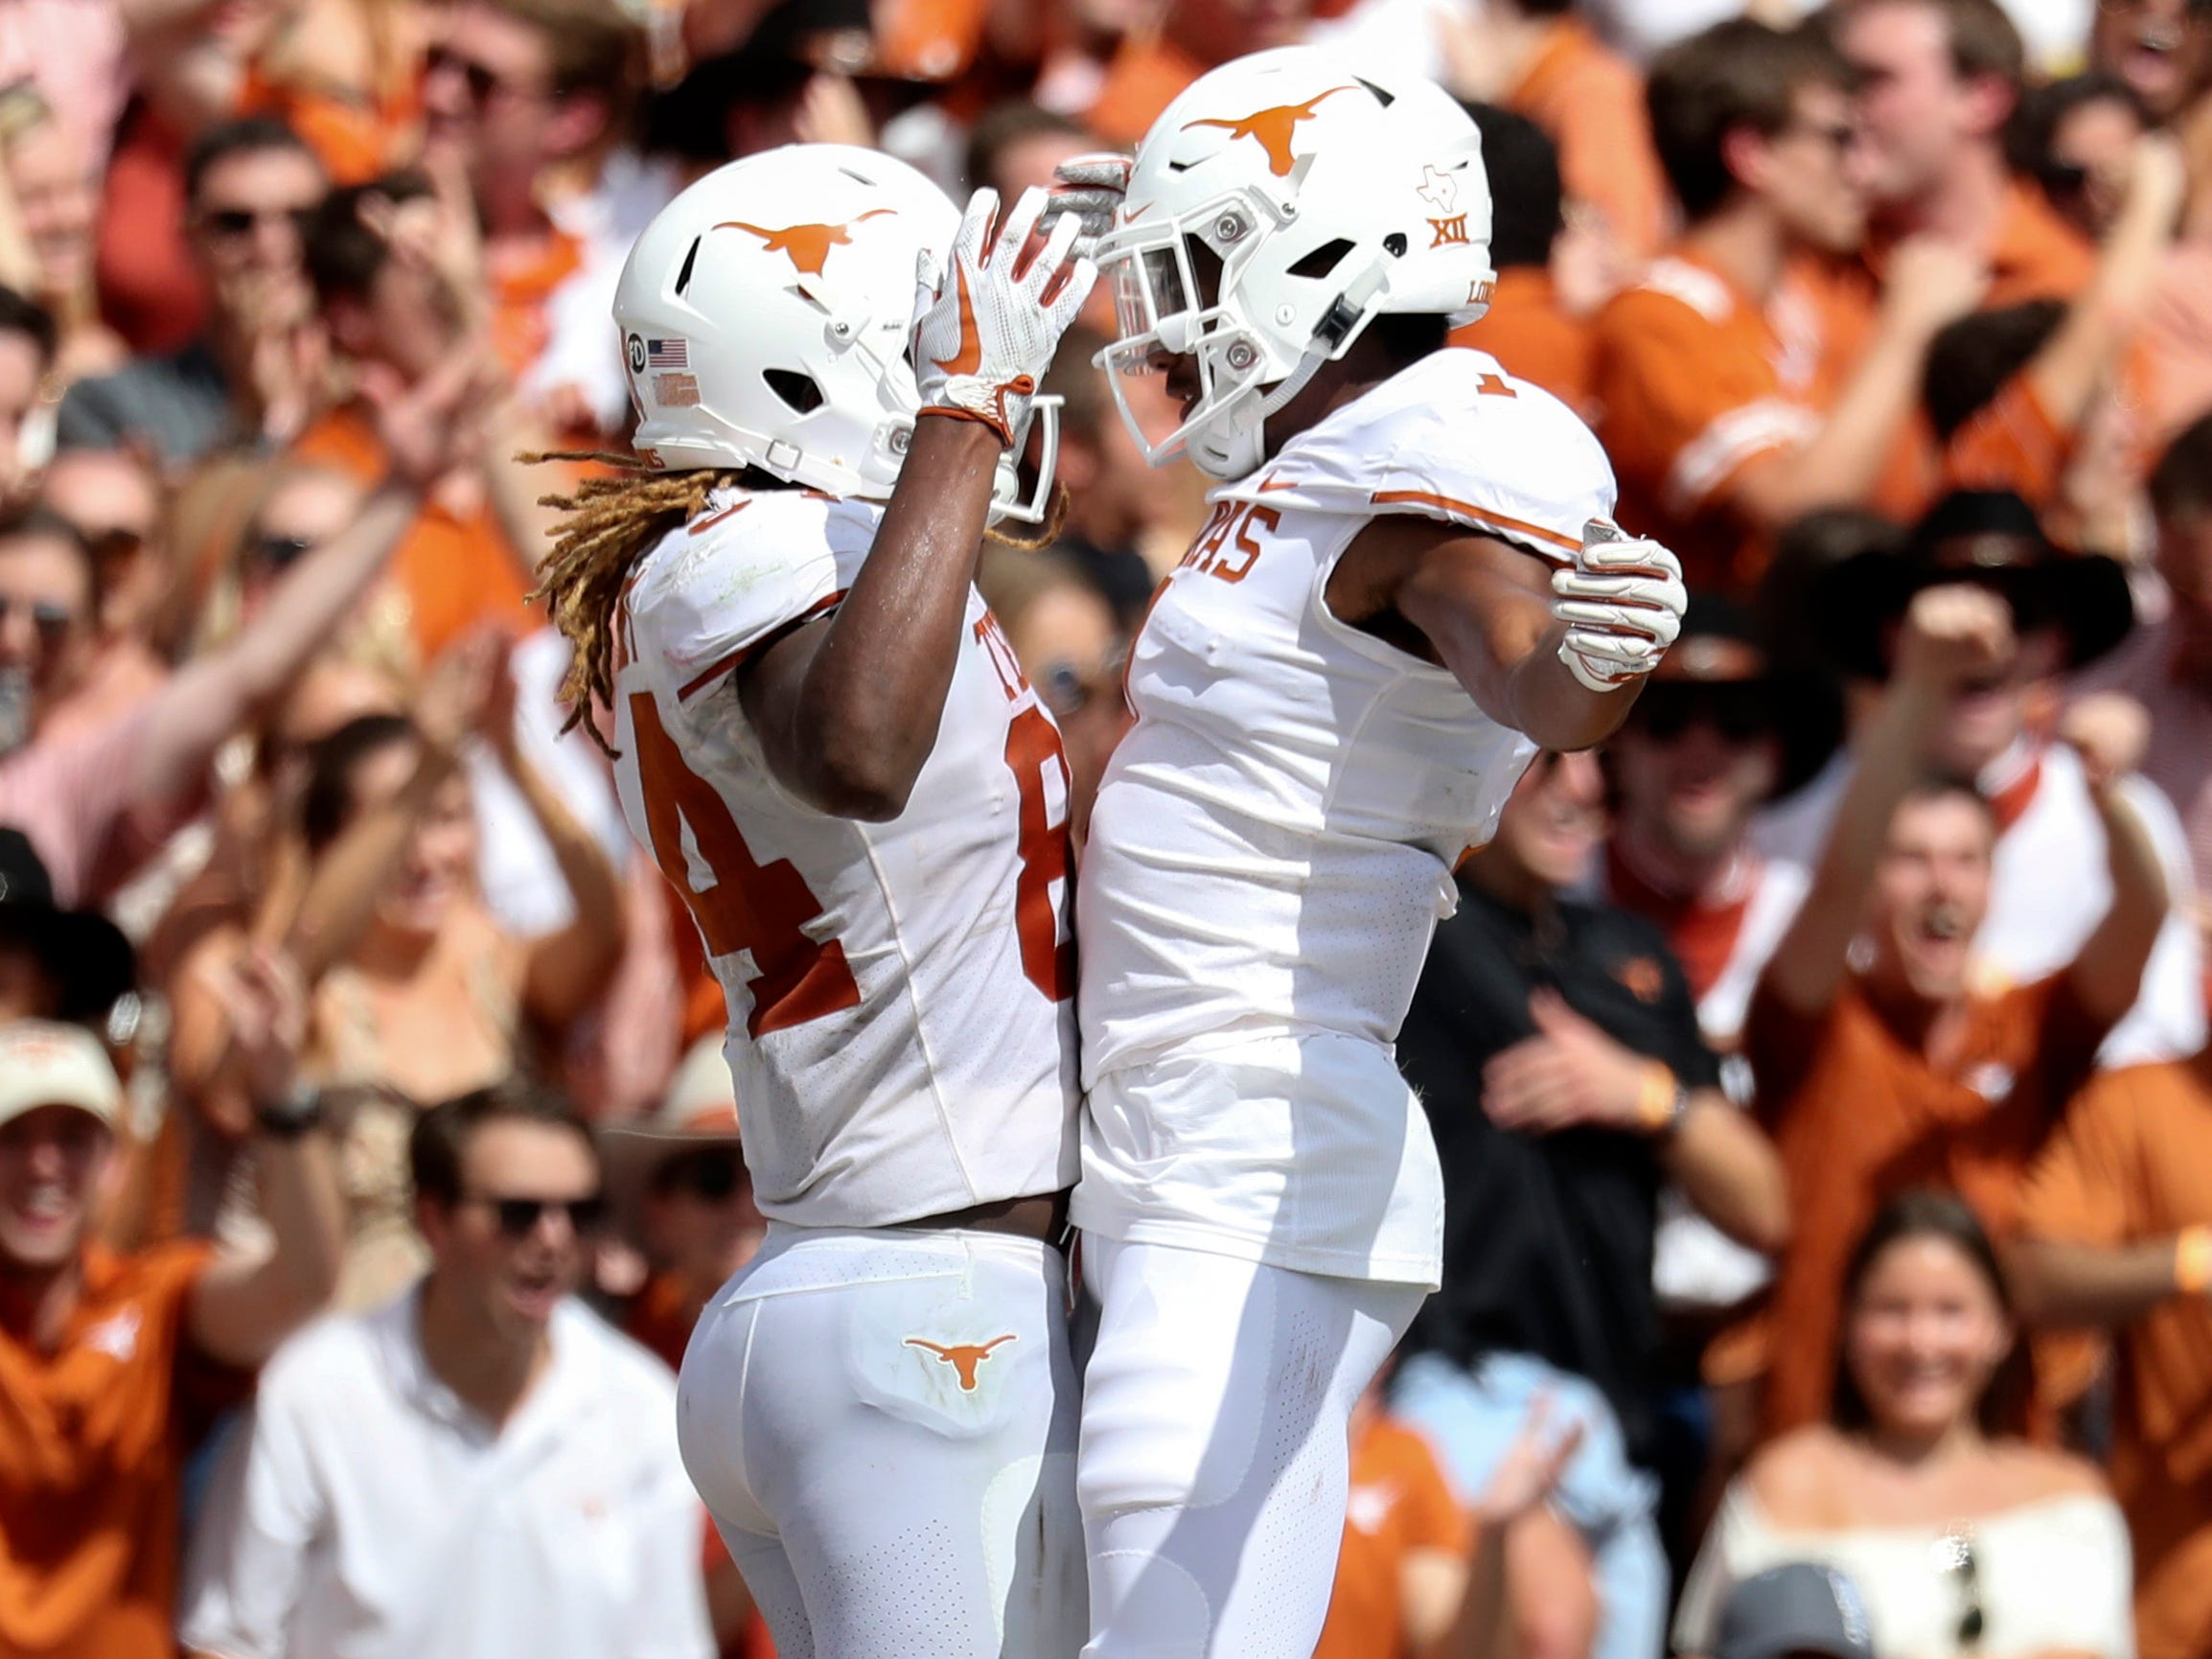 Texas Longhorns wide receiver Lil'Jordan Humphrey celebrates with teammates after scoring a touchdown during the second half against the Oklahoma Sooners at the Cotton Bowl.